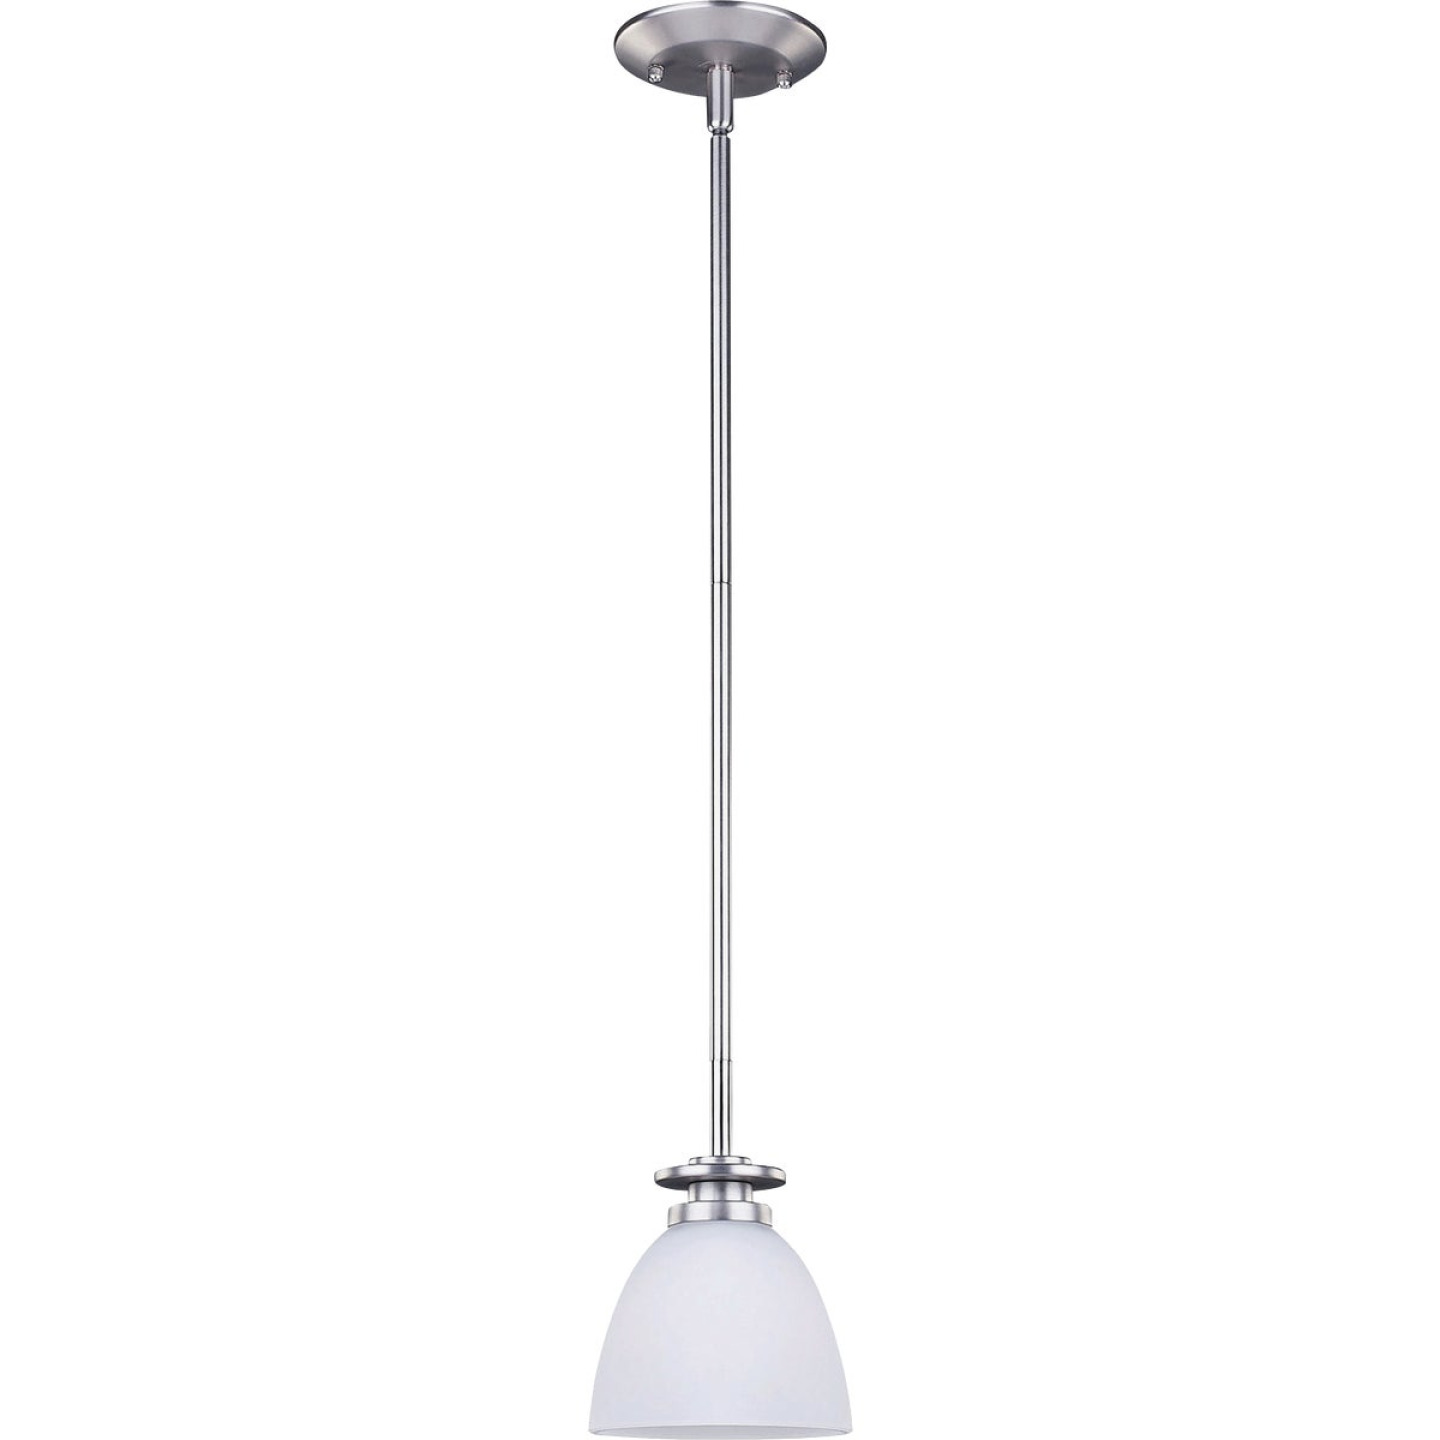 Home Impressions 1-Bulb Brushed Nickel Incandescent Pendant Light Fixture, Clear Glass Image 1